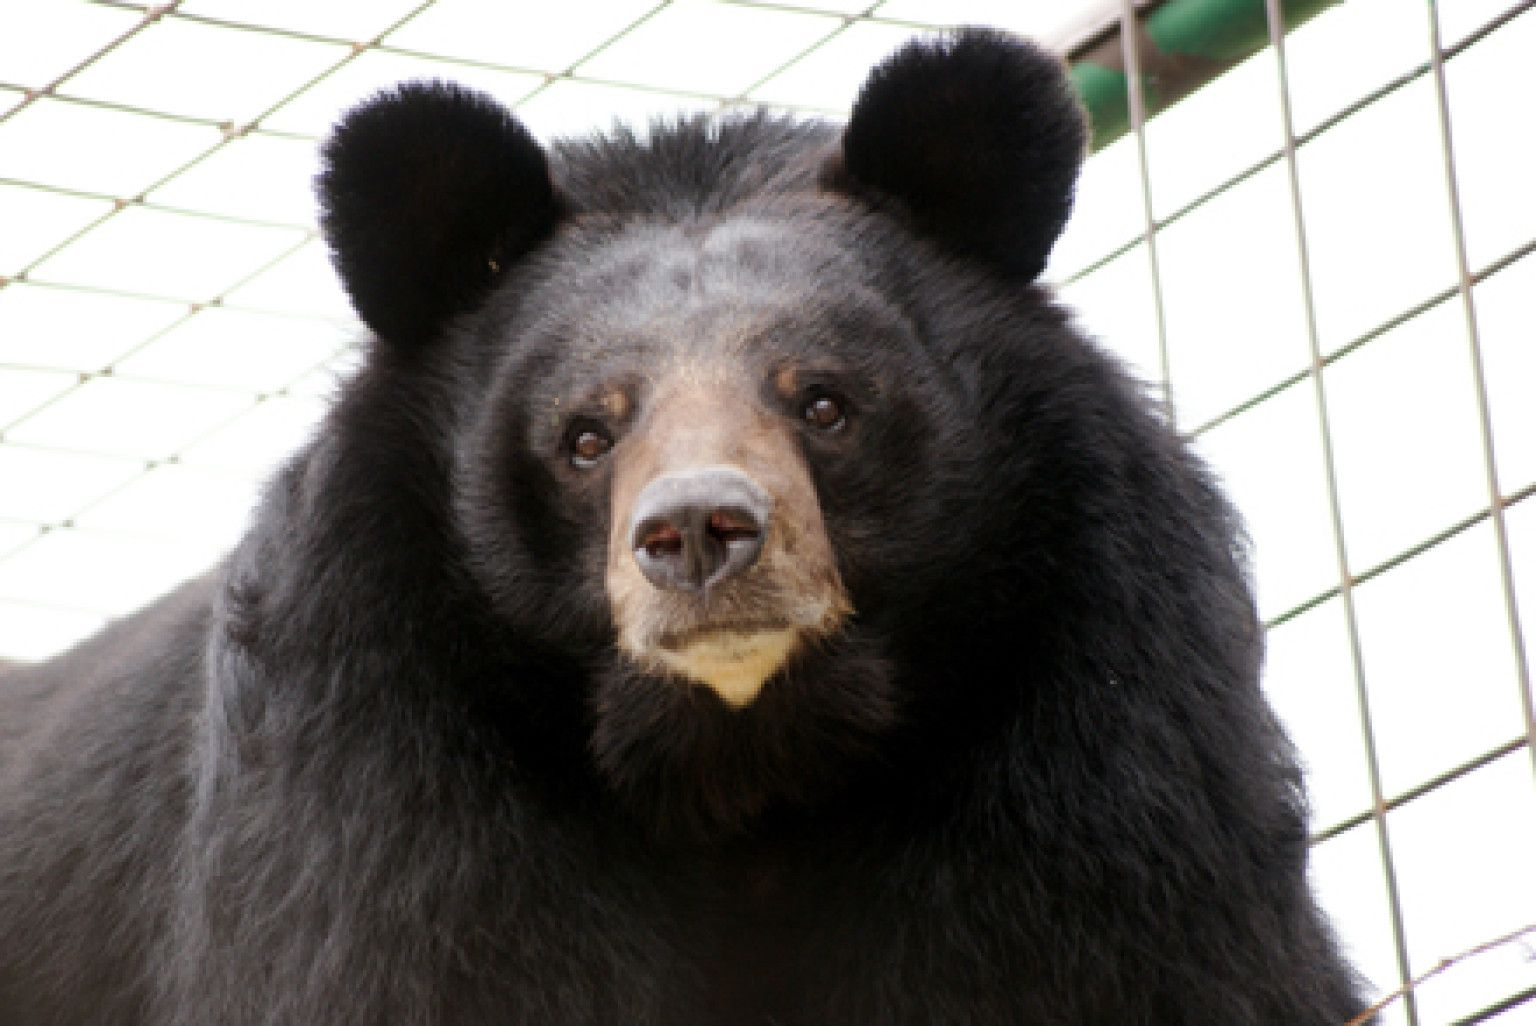 Bears Rescued From Inhumane Bear Park Thriving In New Home Animal Sanctuary Animal Rescue Stories Texas Animals